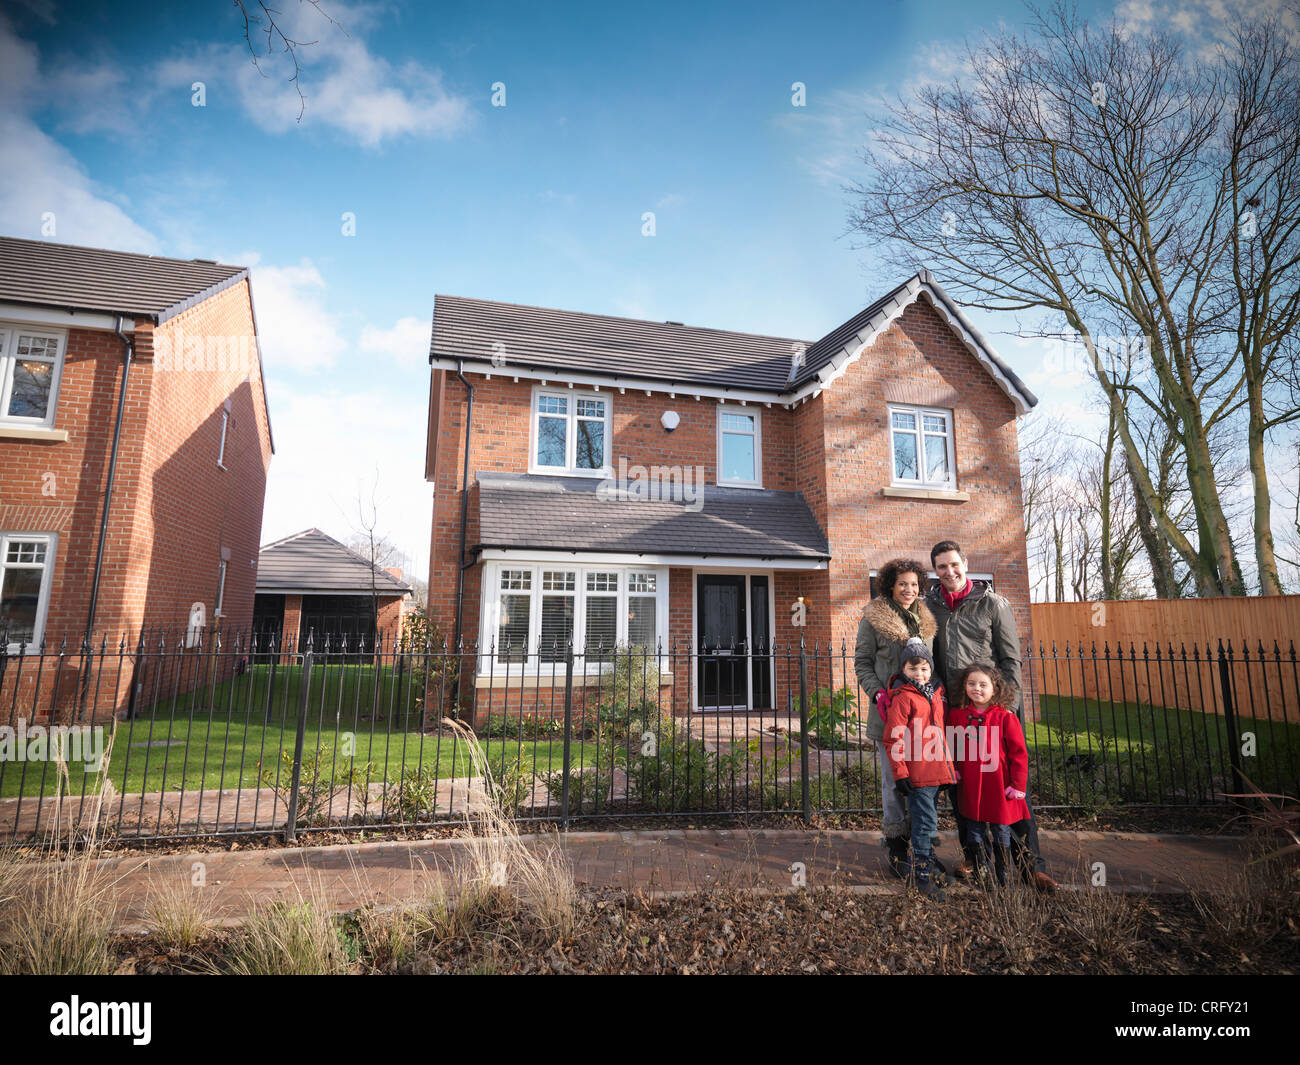 Family smiling outside house - Stock Image